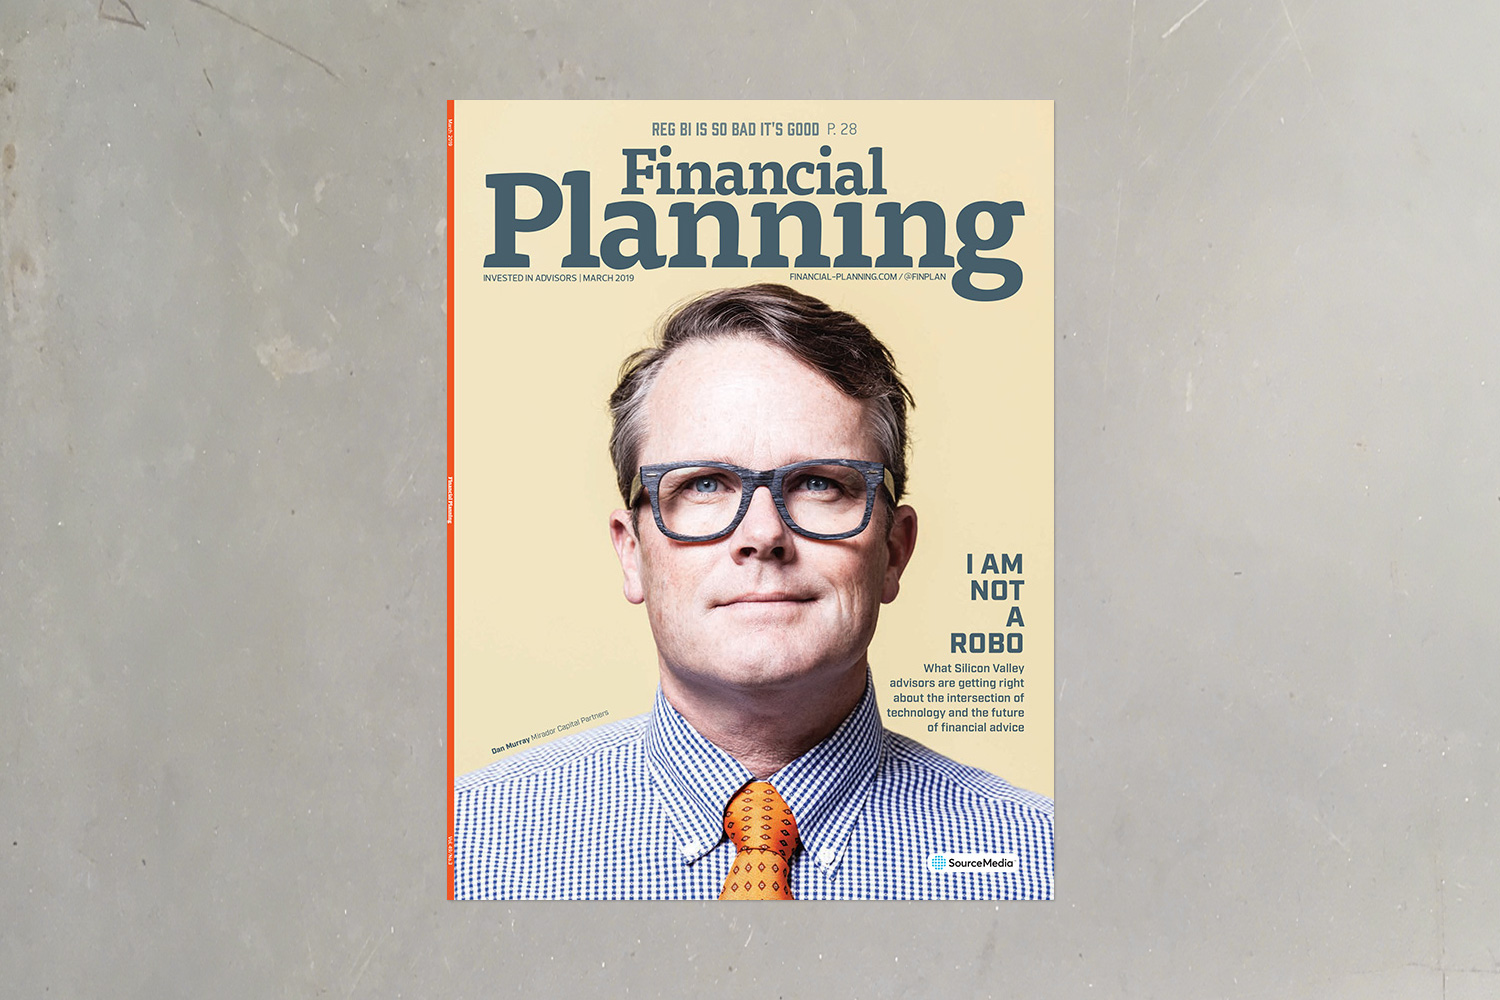 PATRICK STRATTNER PHOTOGRAPHY | TEAR SHEETS | Dan Murray / Financial Planning